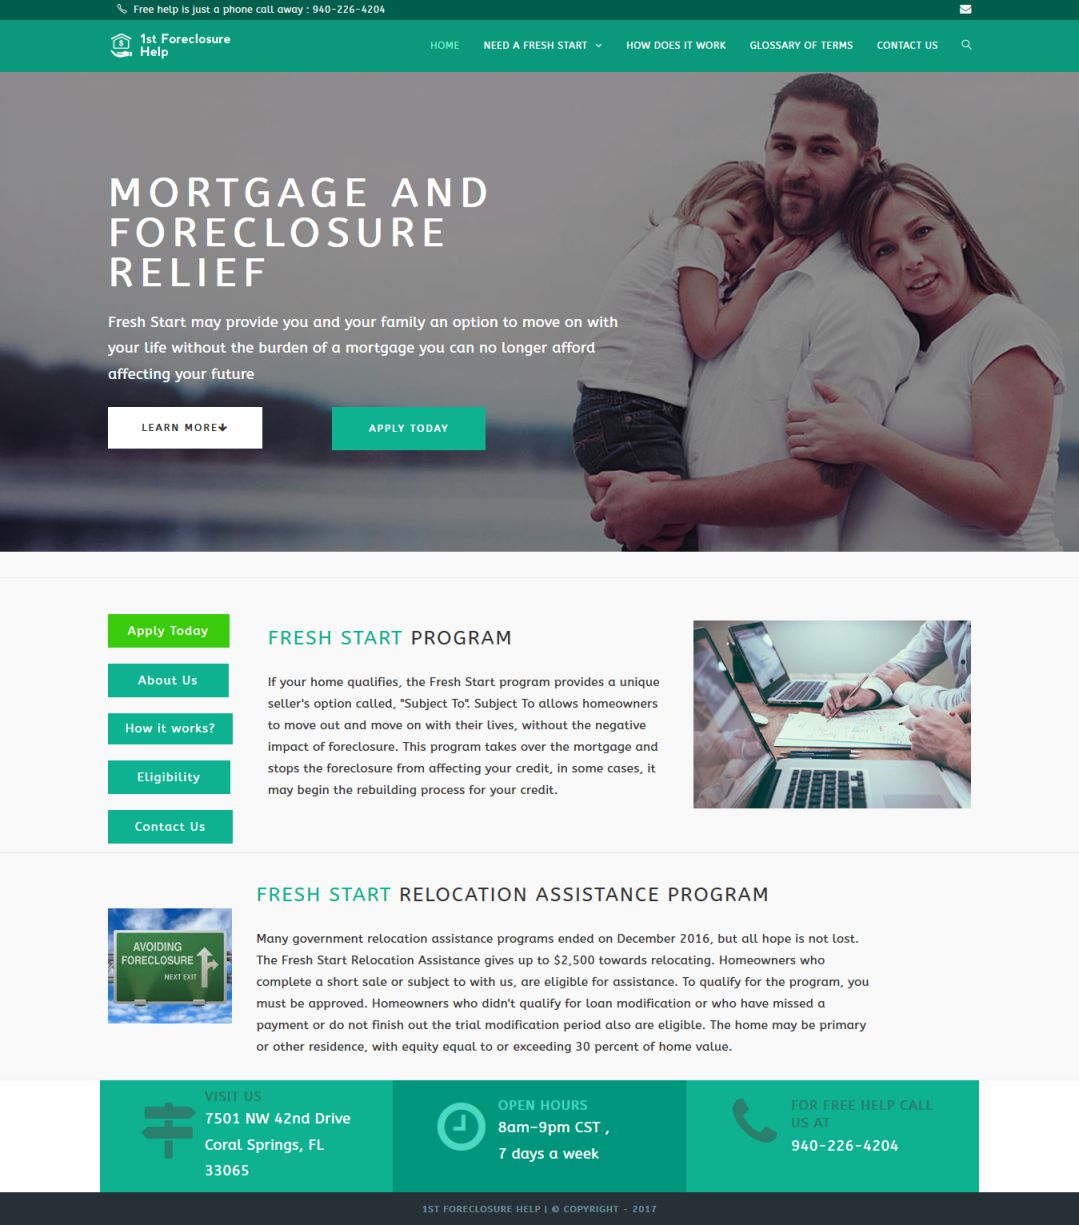 1st Foreclosure Help - Website Development